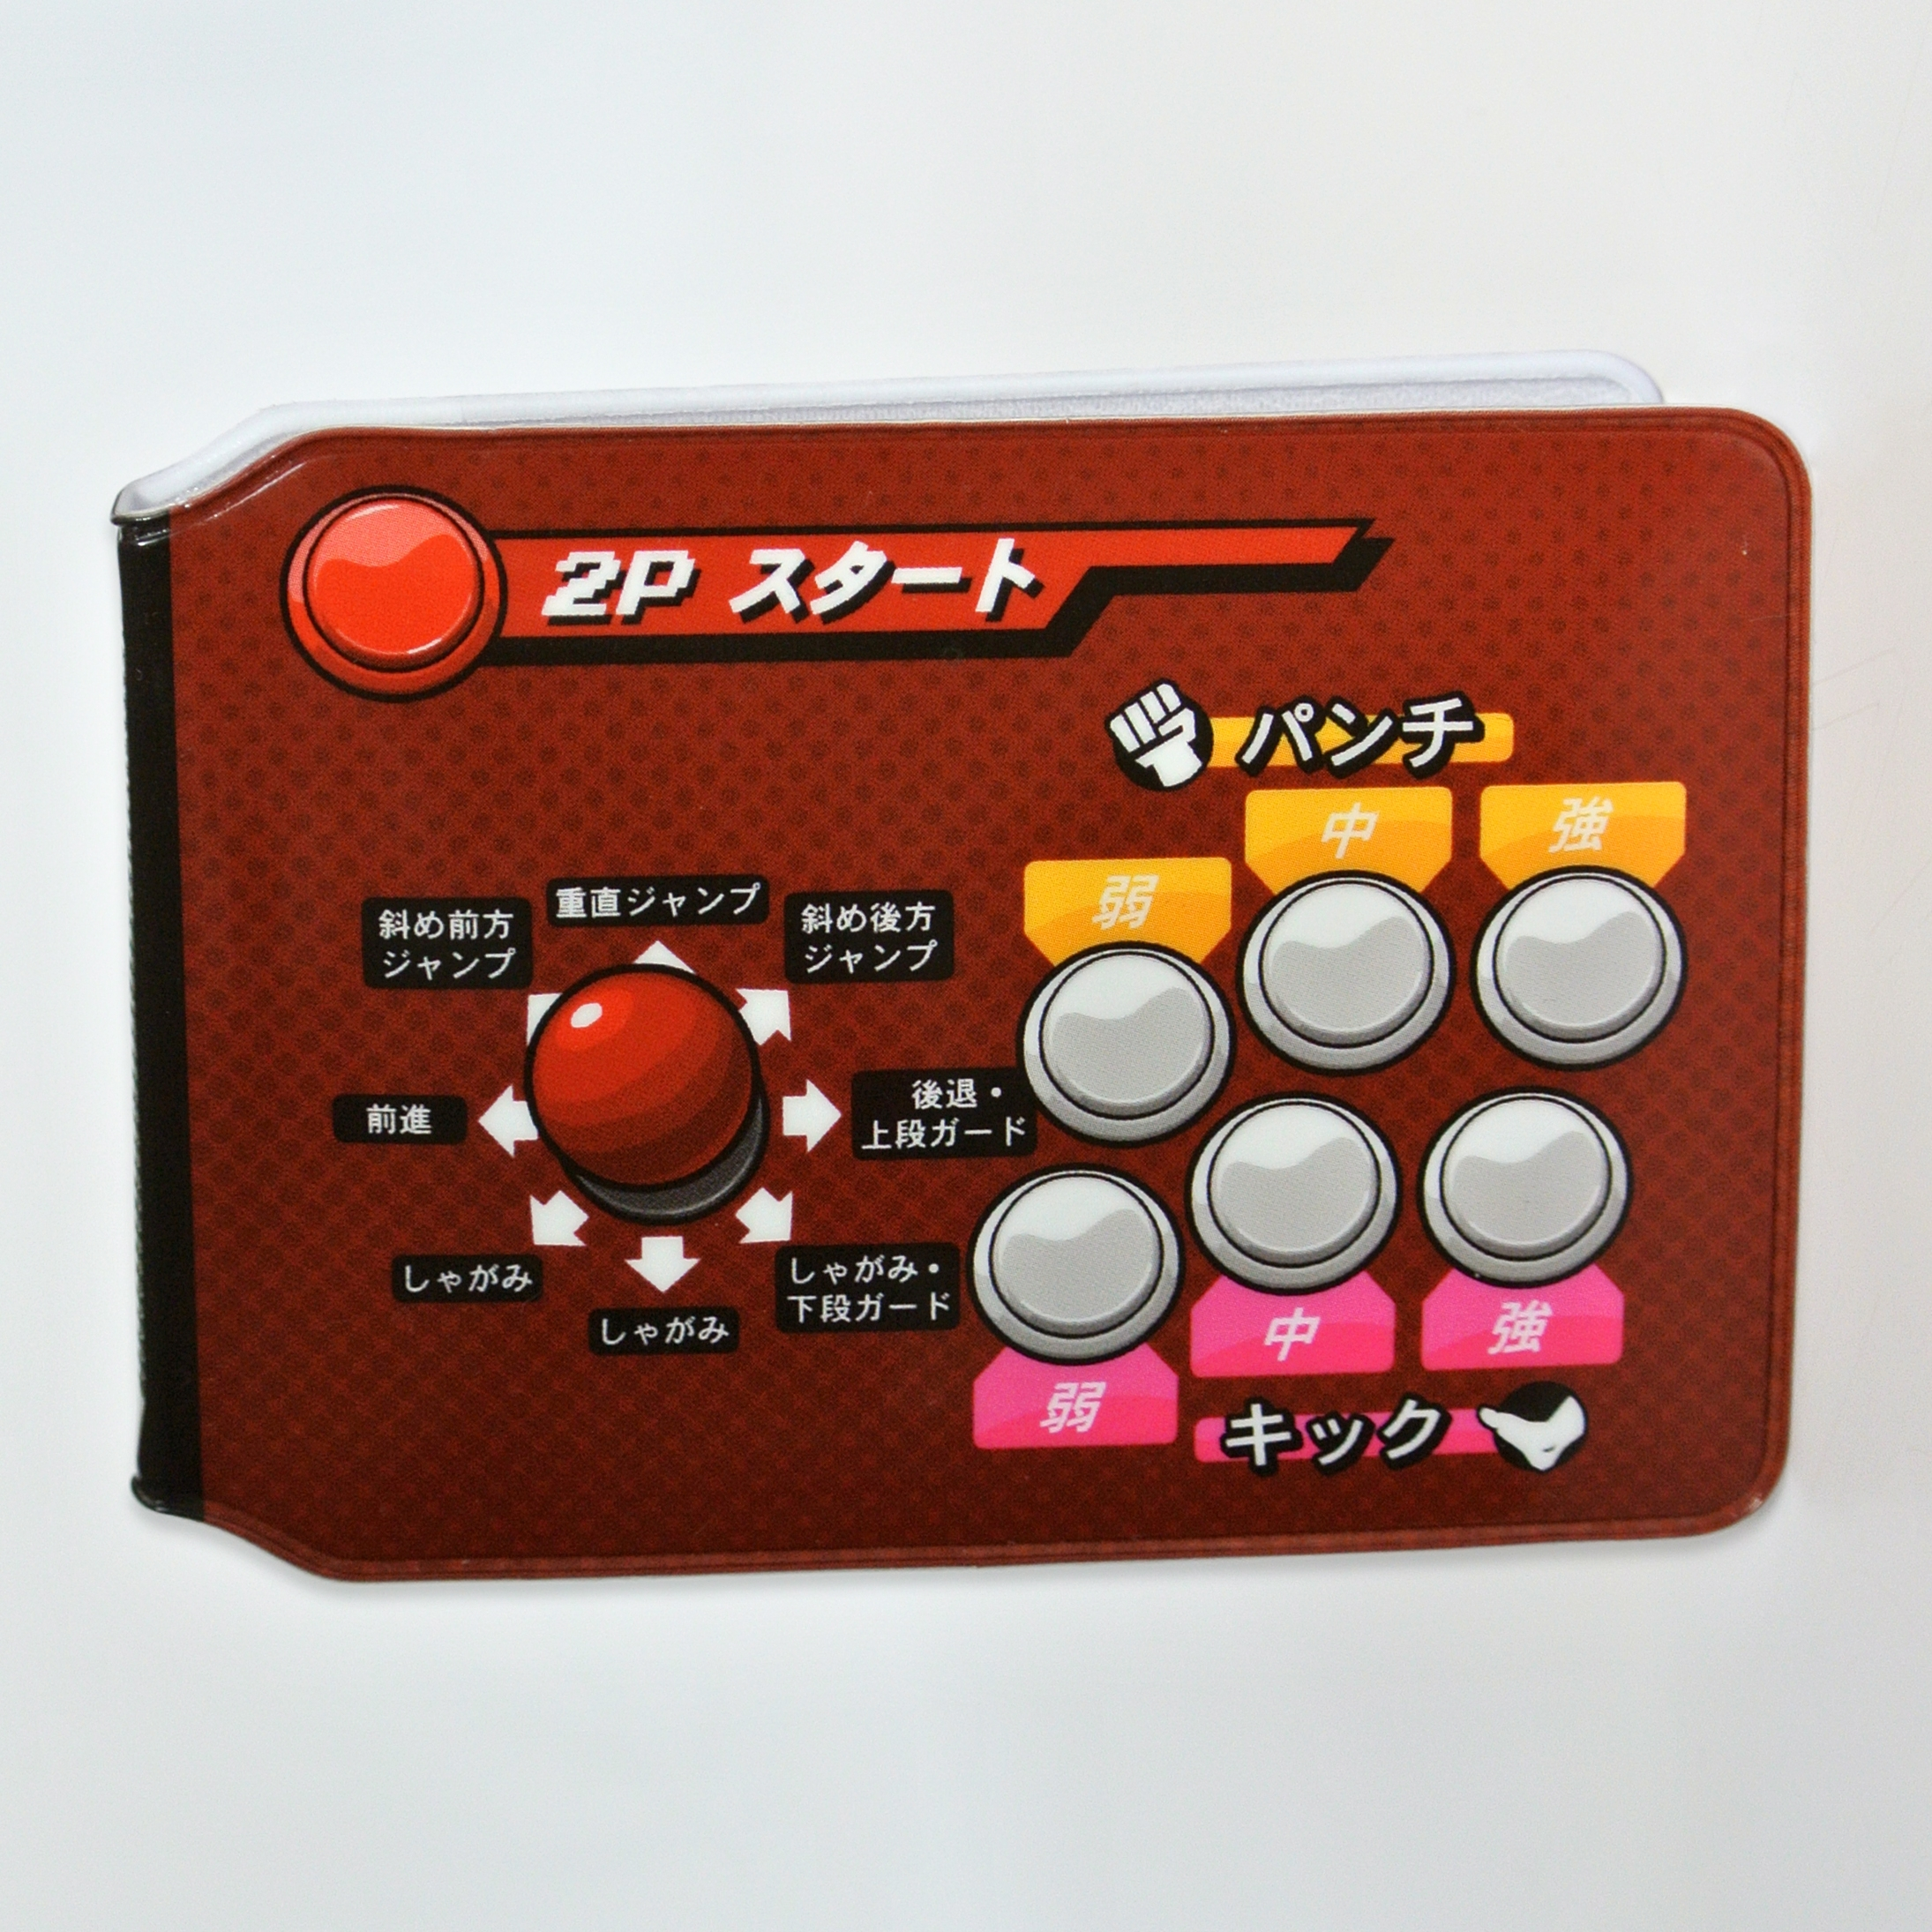 Fighters Arcade Panel Card Holder